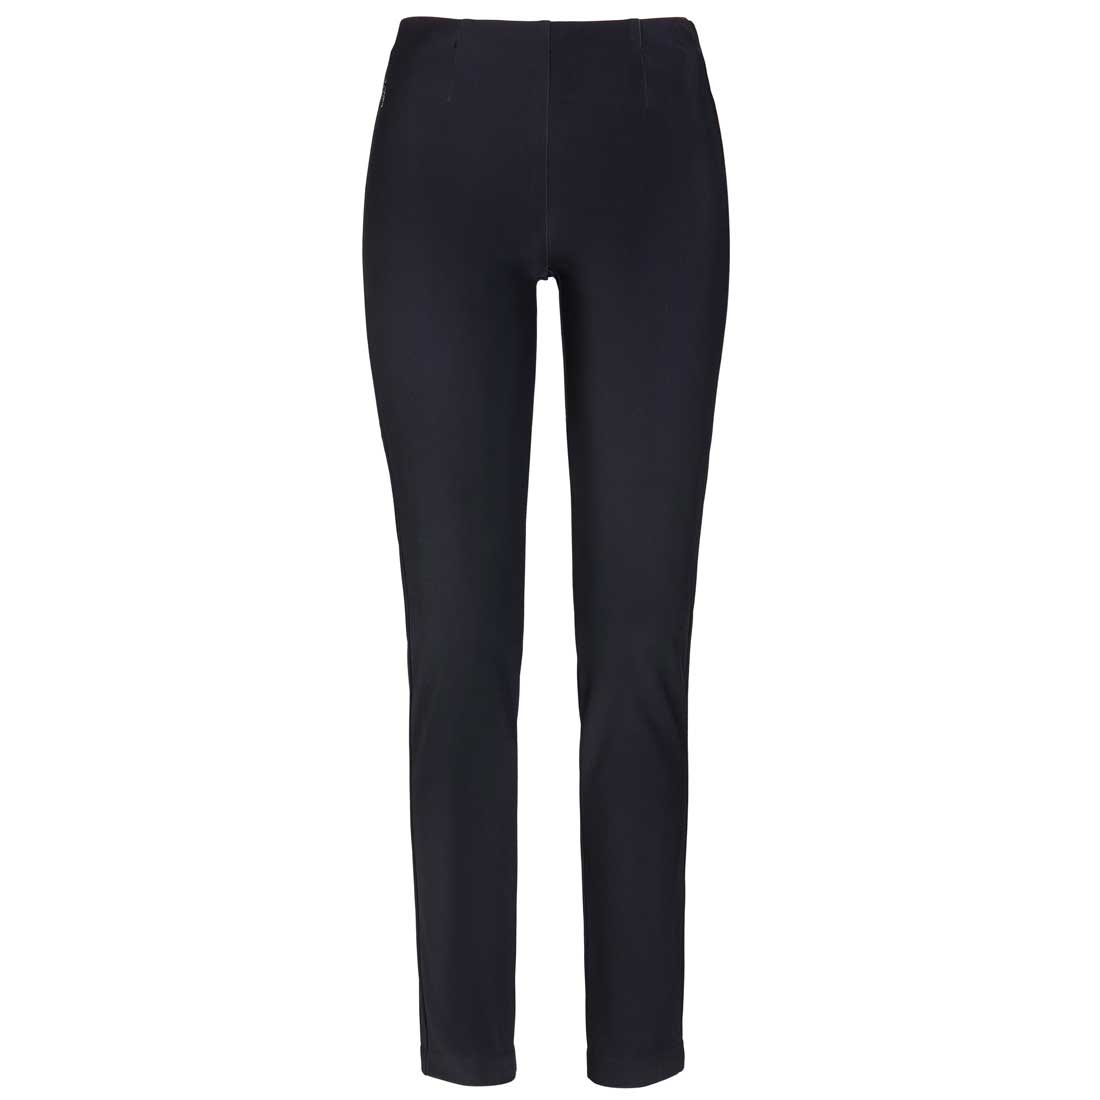 Damen Slim Fit long Stretchhose Cold Protection